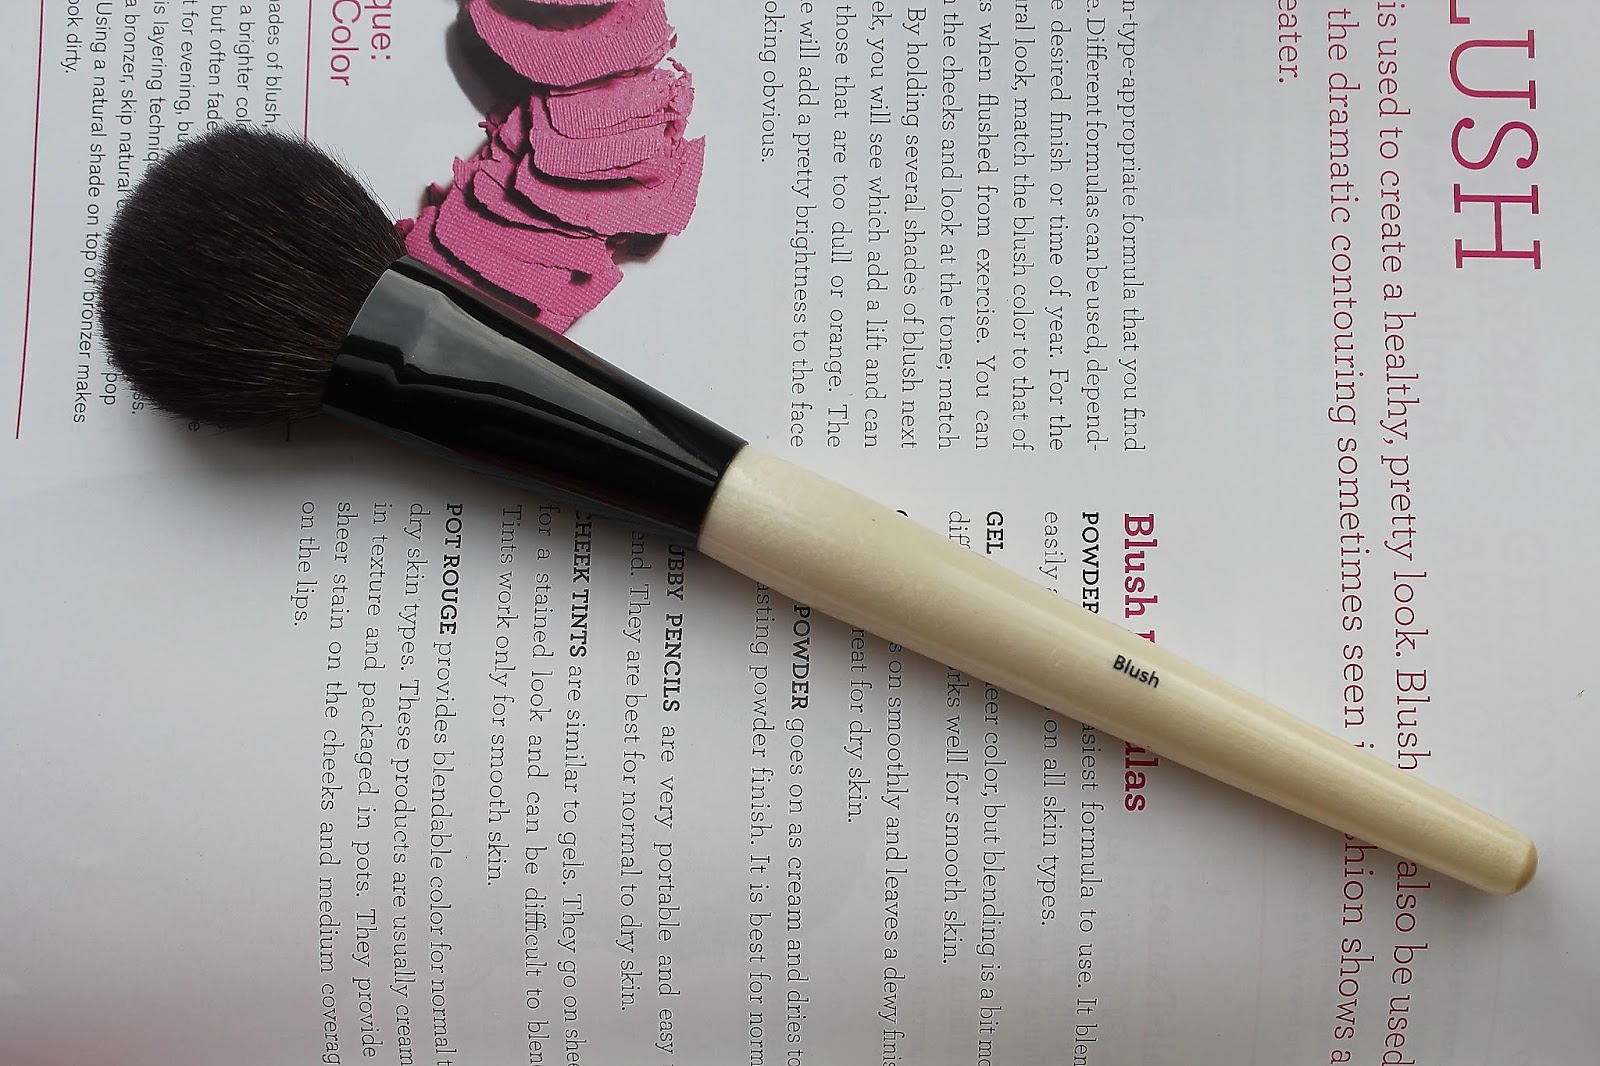 bobbi brown brushes uses. bobbi brown blush brush brushes uses a